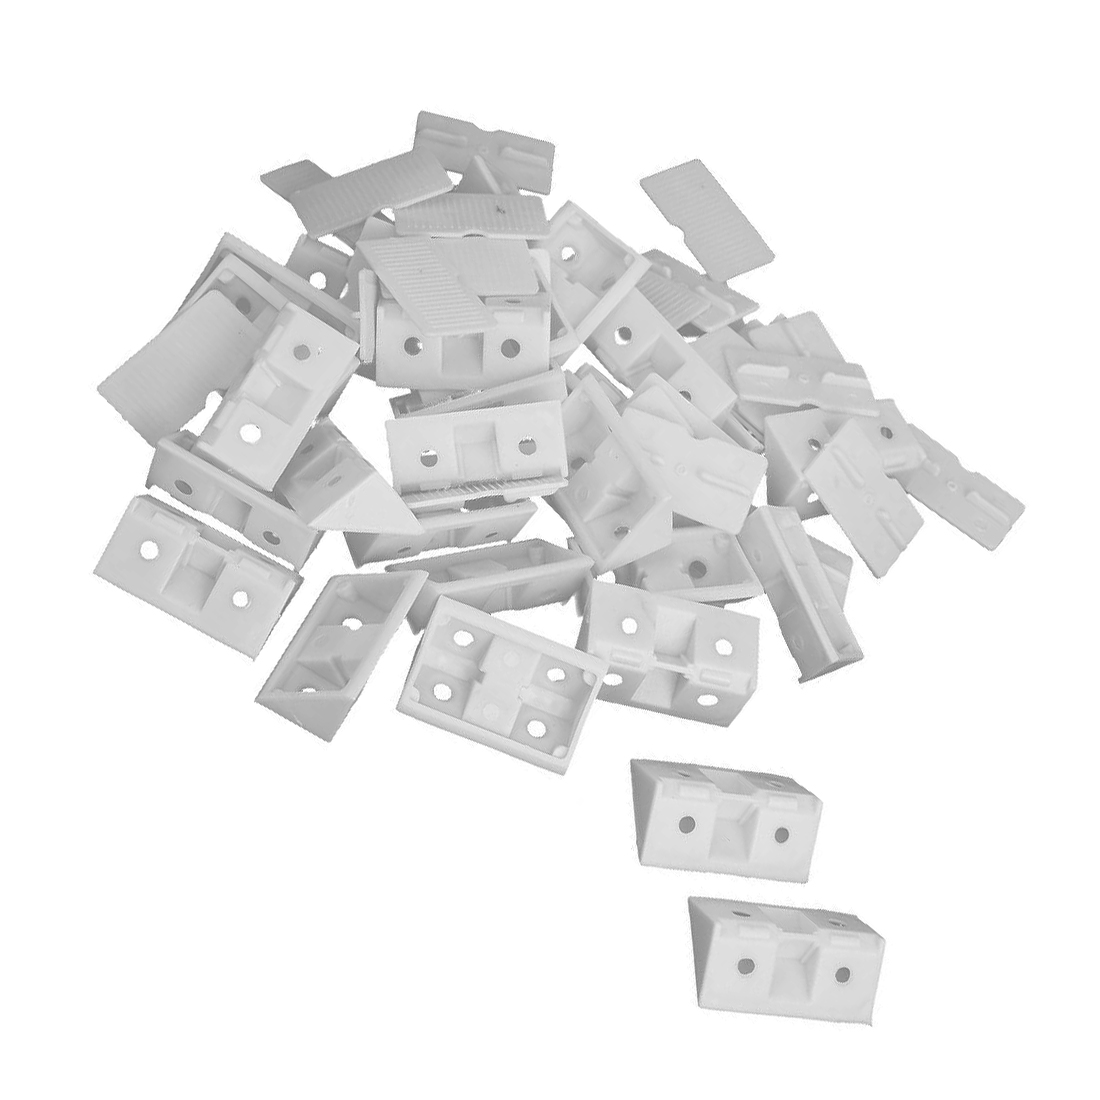 30pcs shelf cabinet 90 degree plastic corner braces angle brackets white hp ebay. Black Bedroom Furniture Sets. Home Design Ideas